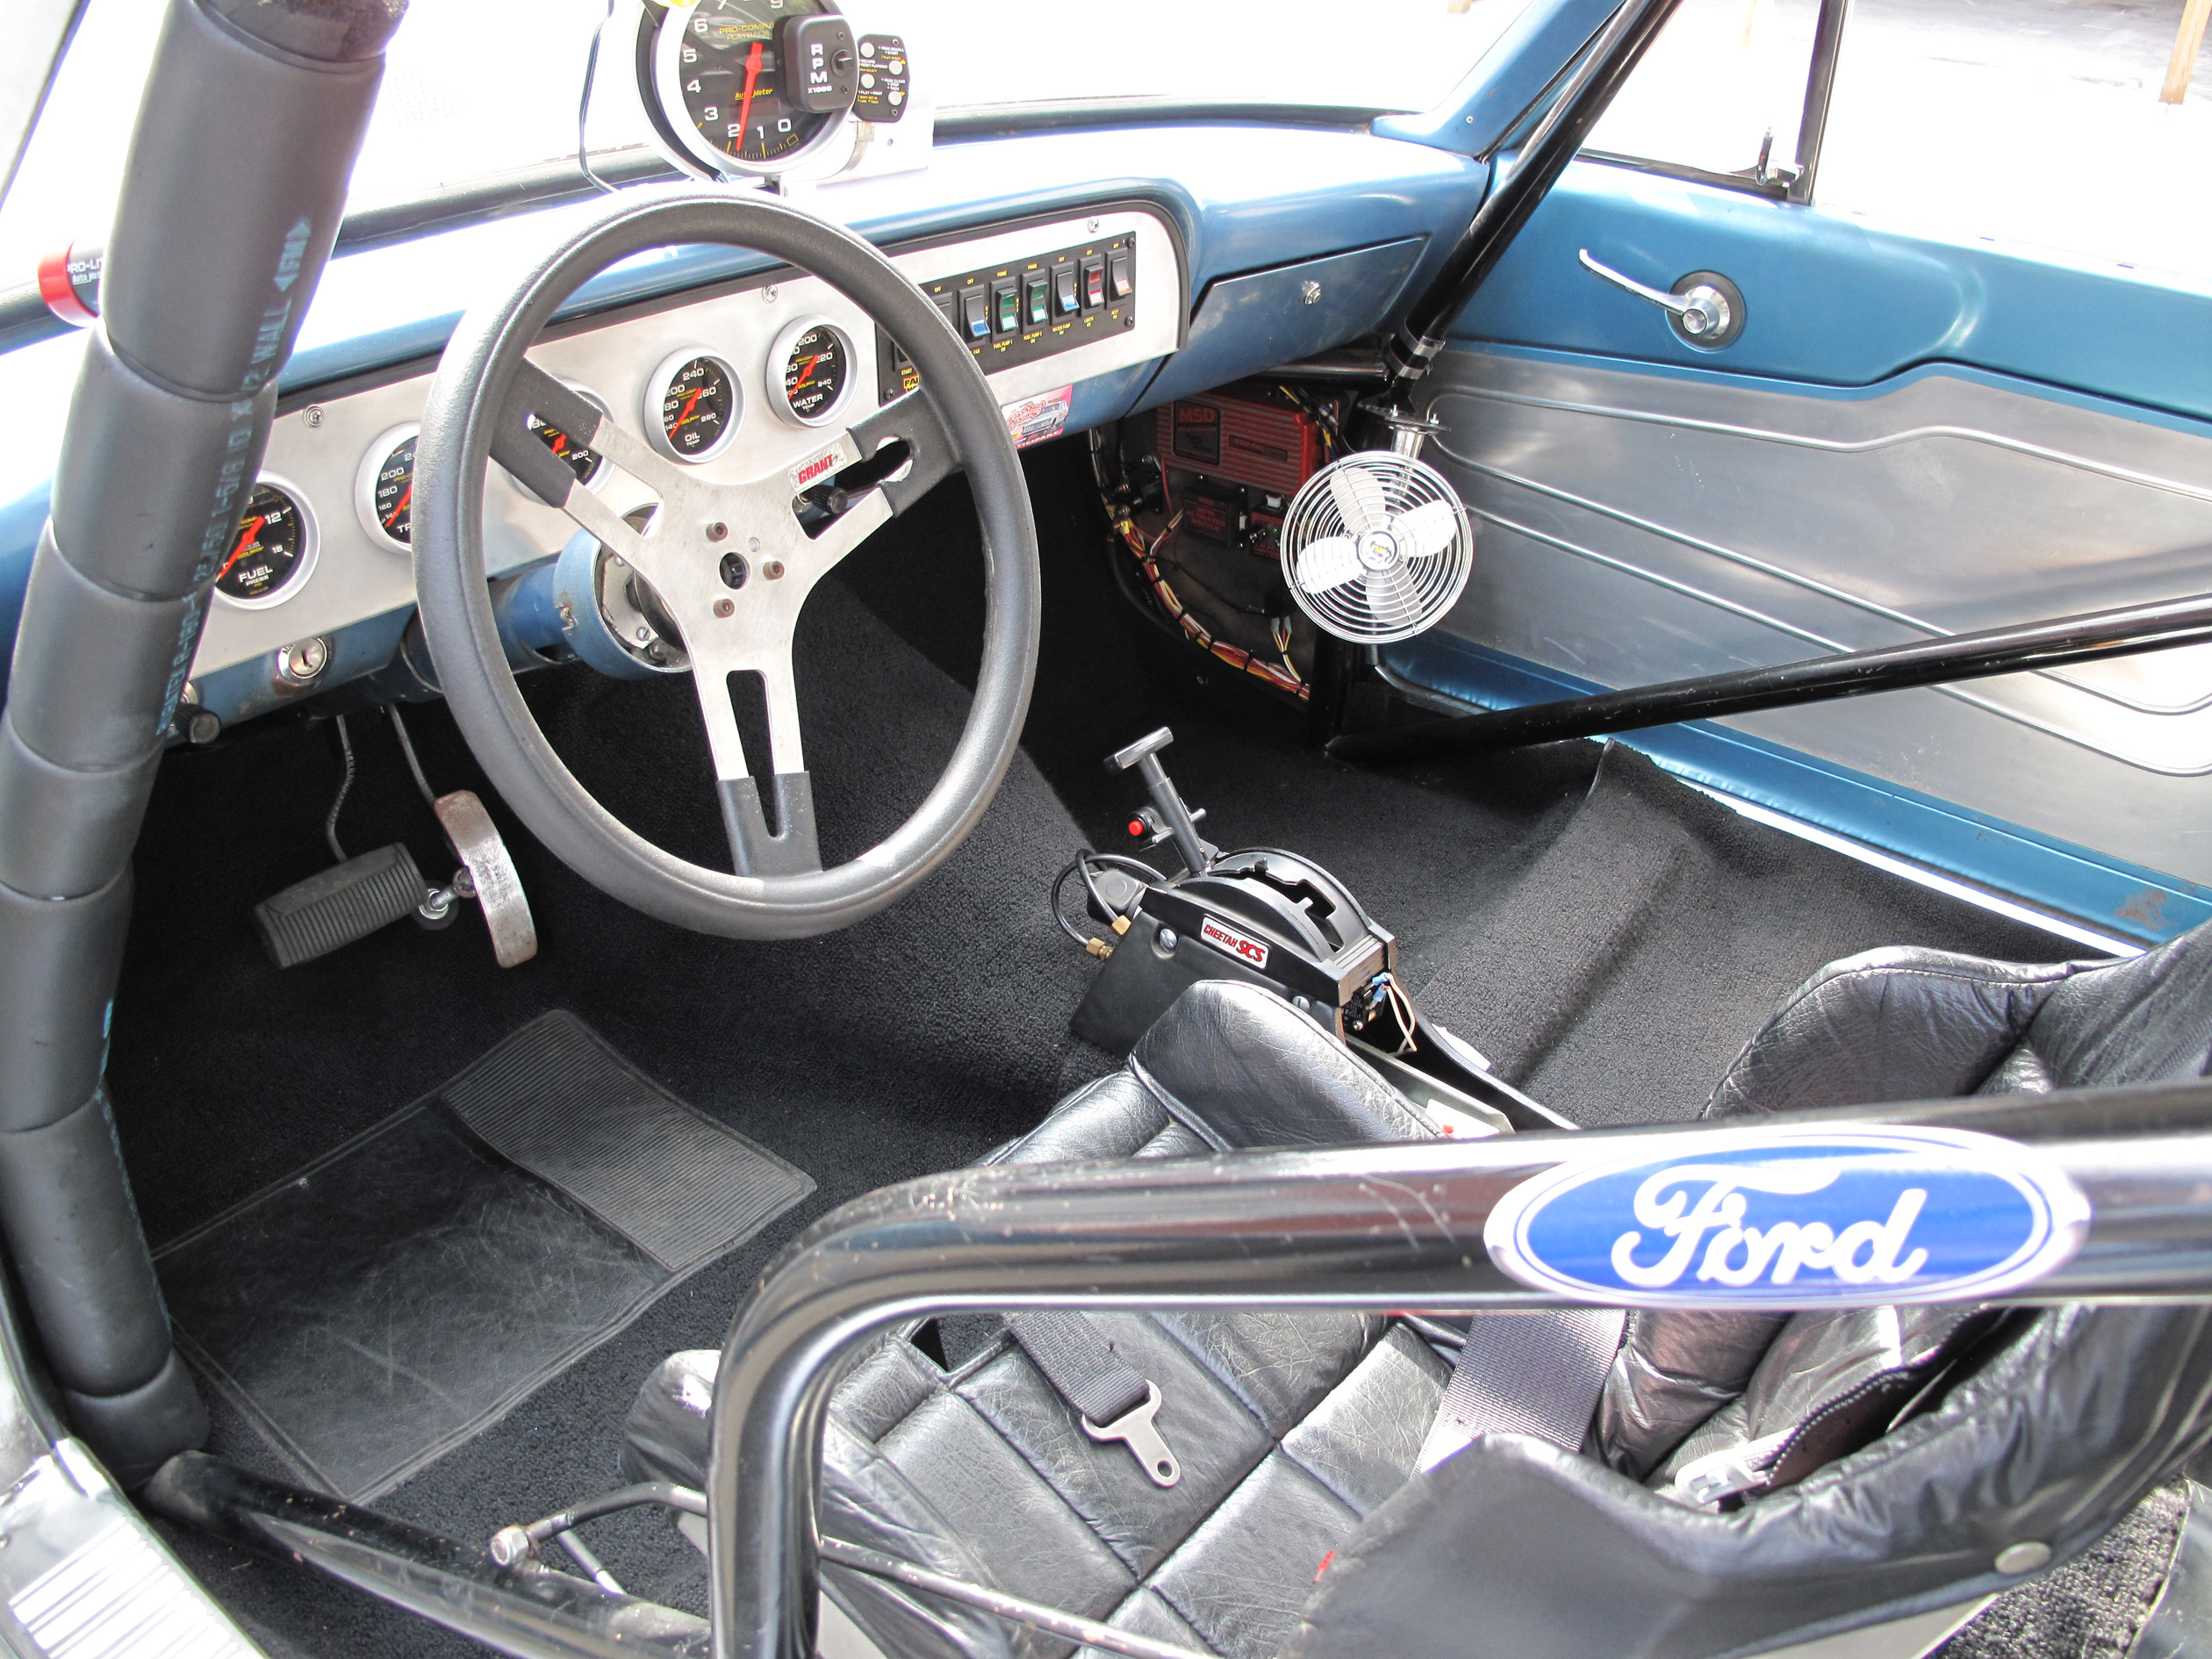 1964 FORD THUNDERBOLT RE-CREATION - Interior - 81009